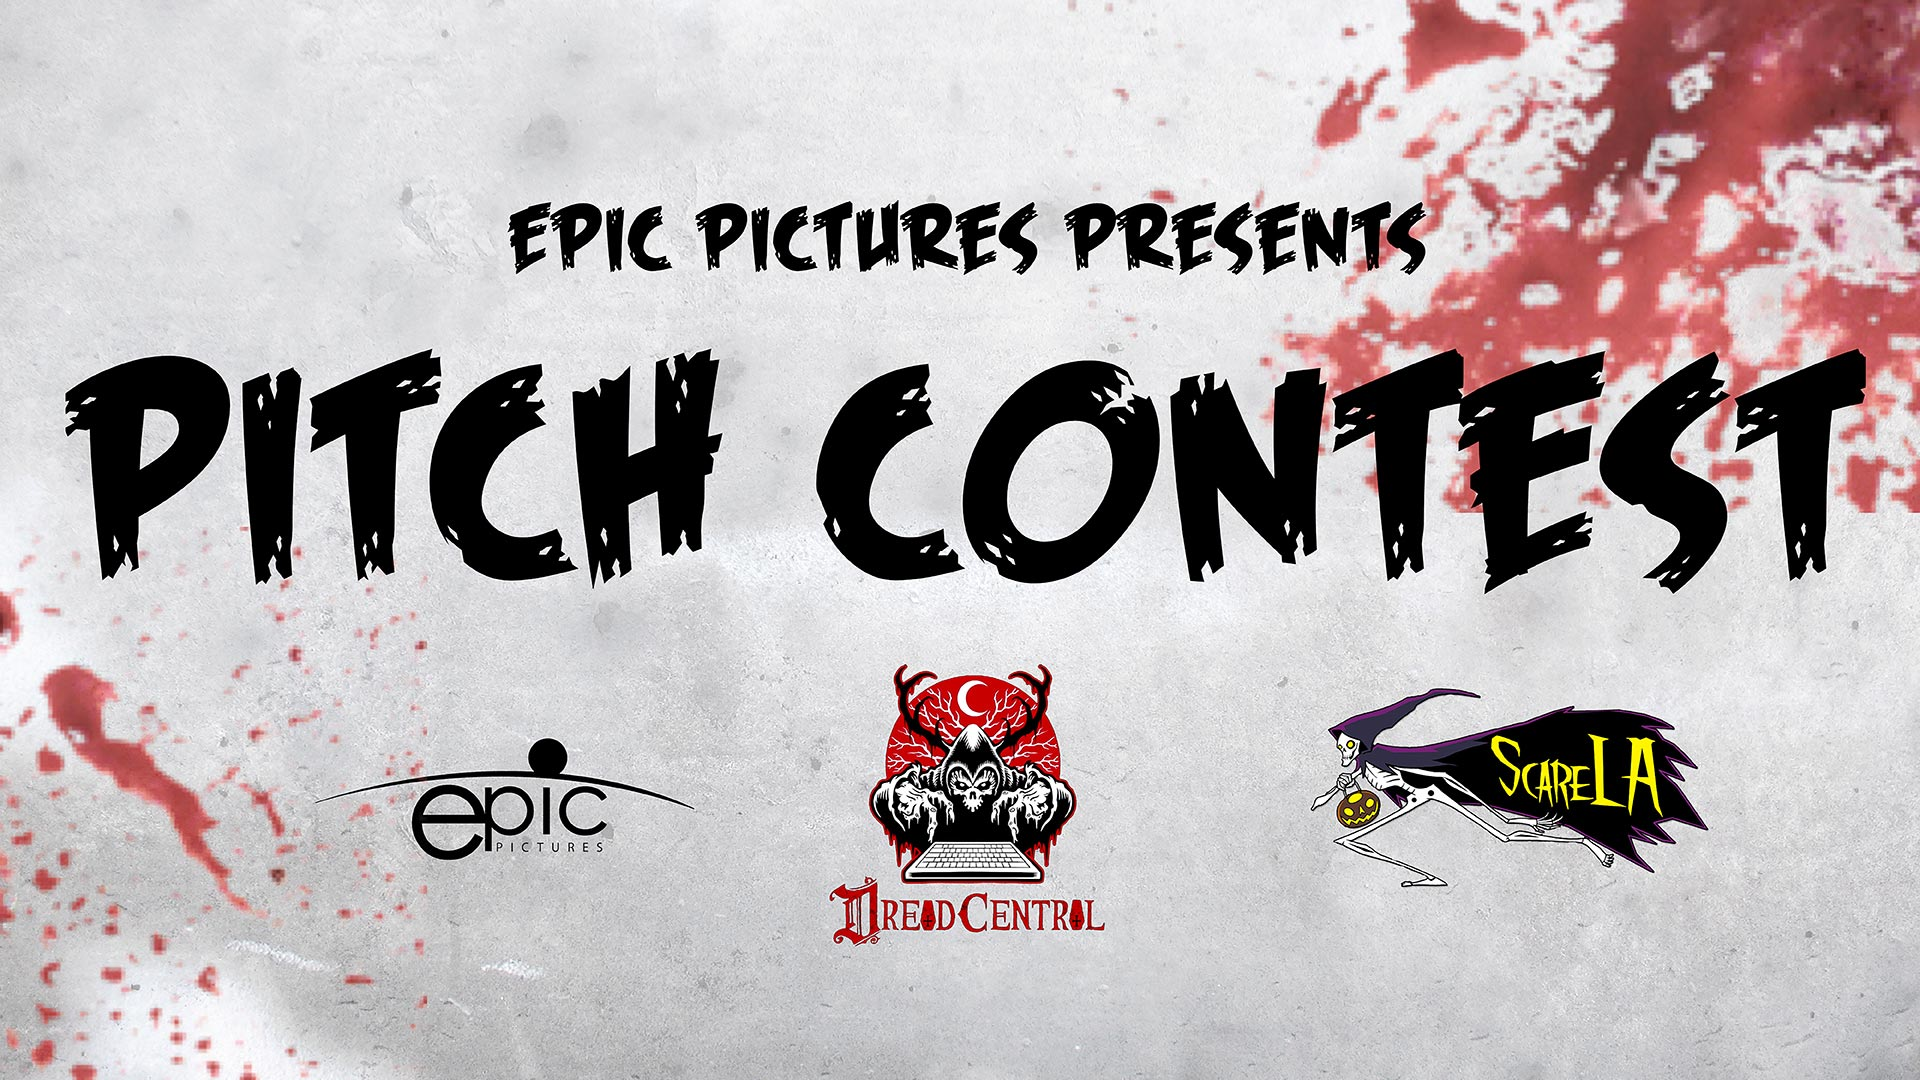 epicdreadscarela pitchcontest2017 - Epic Pictures, Dread Central, and ScareLA Team Up for a Pitch Contest: Win $5,000